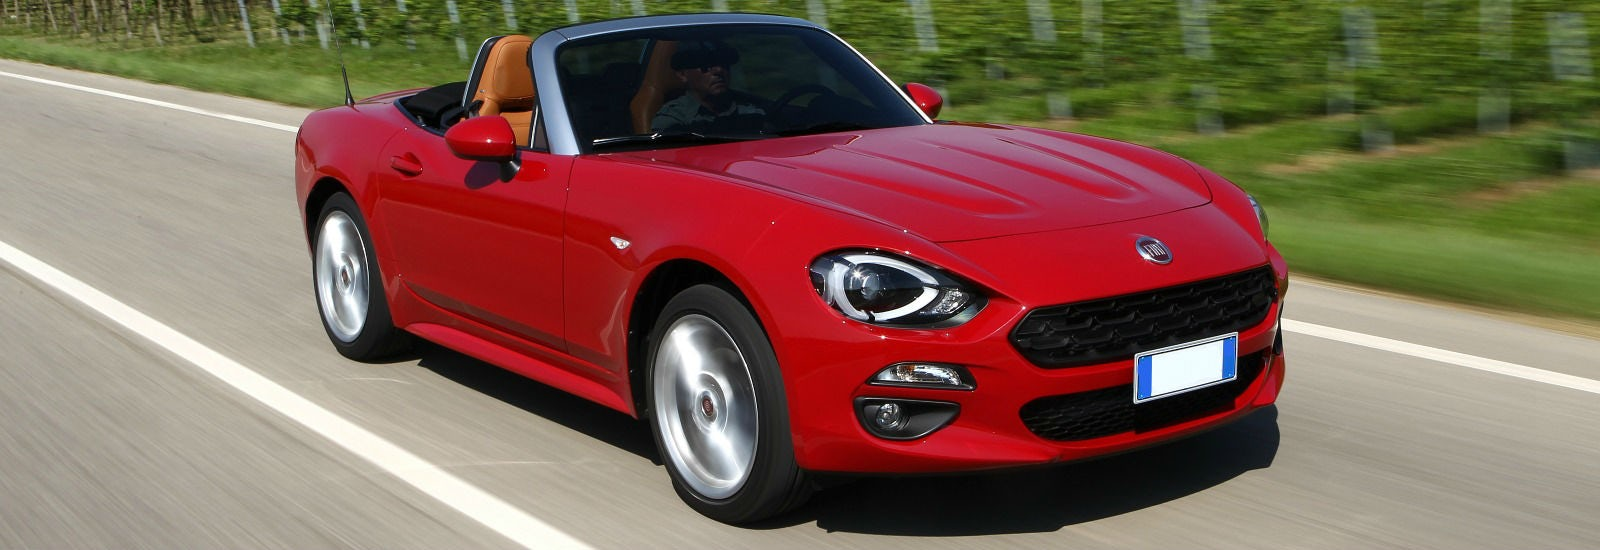 The UKs Cheapest Convertible Sports Cars Carwow - The cheapest sports car